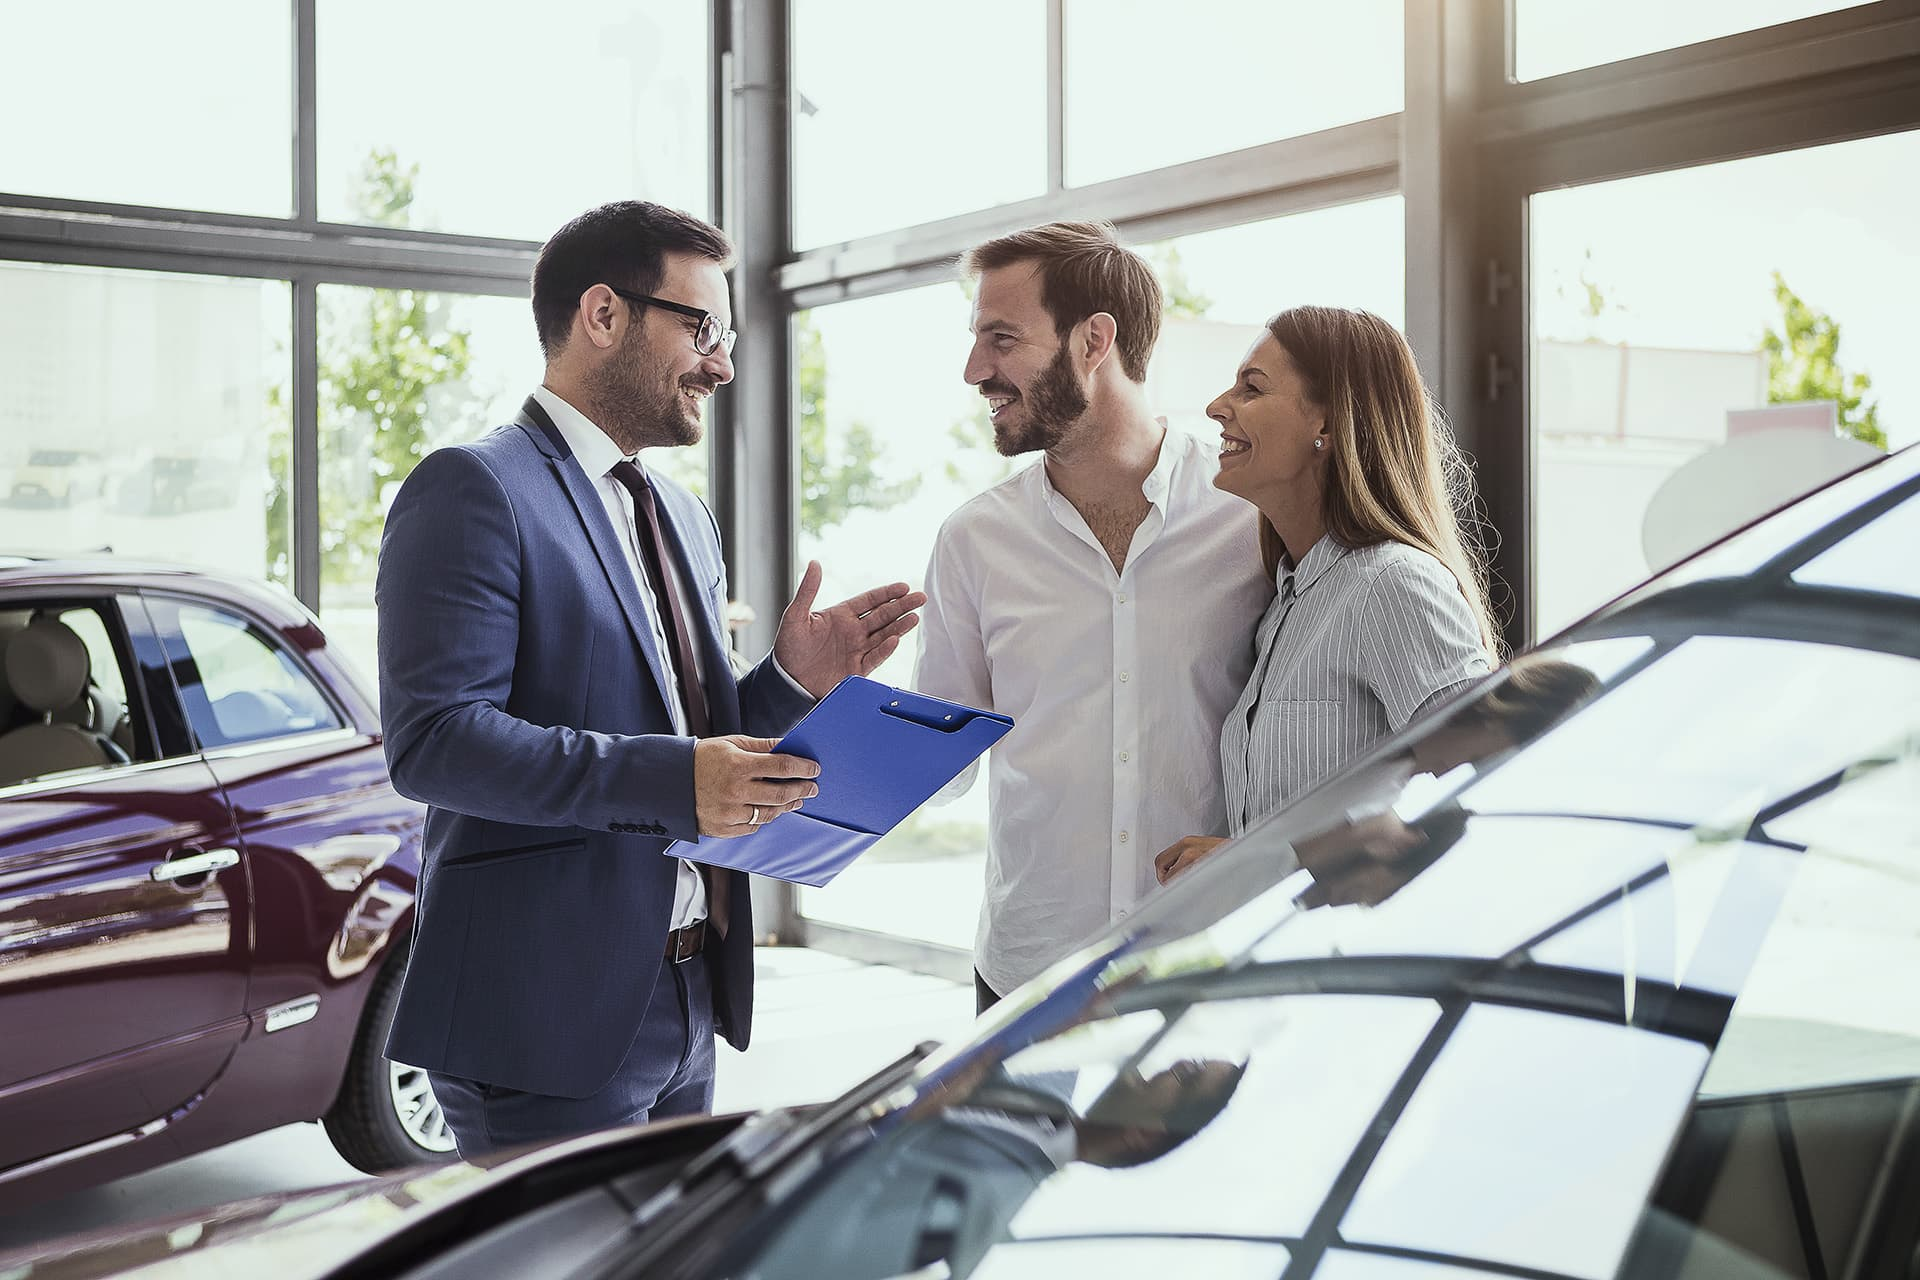 Couple speaking to a car sales man in a building with auto dealer insurance